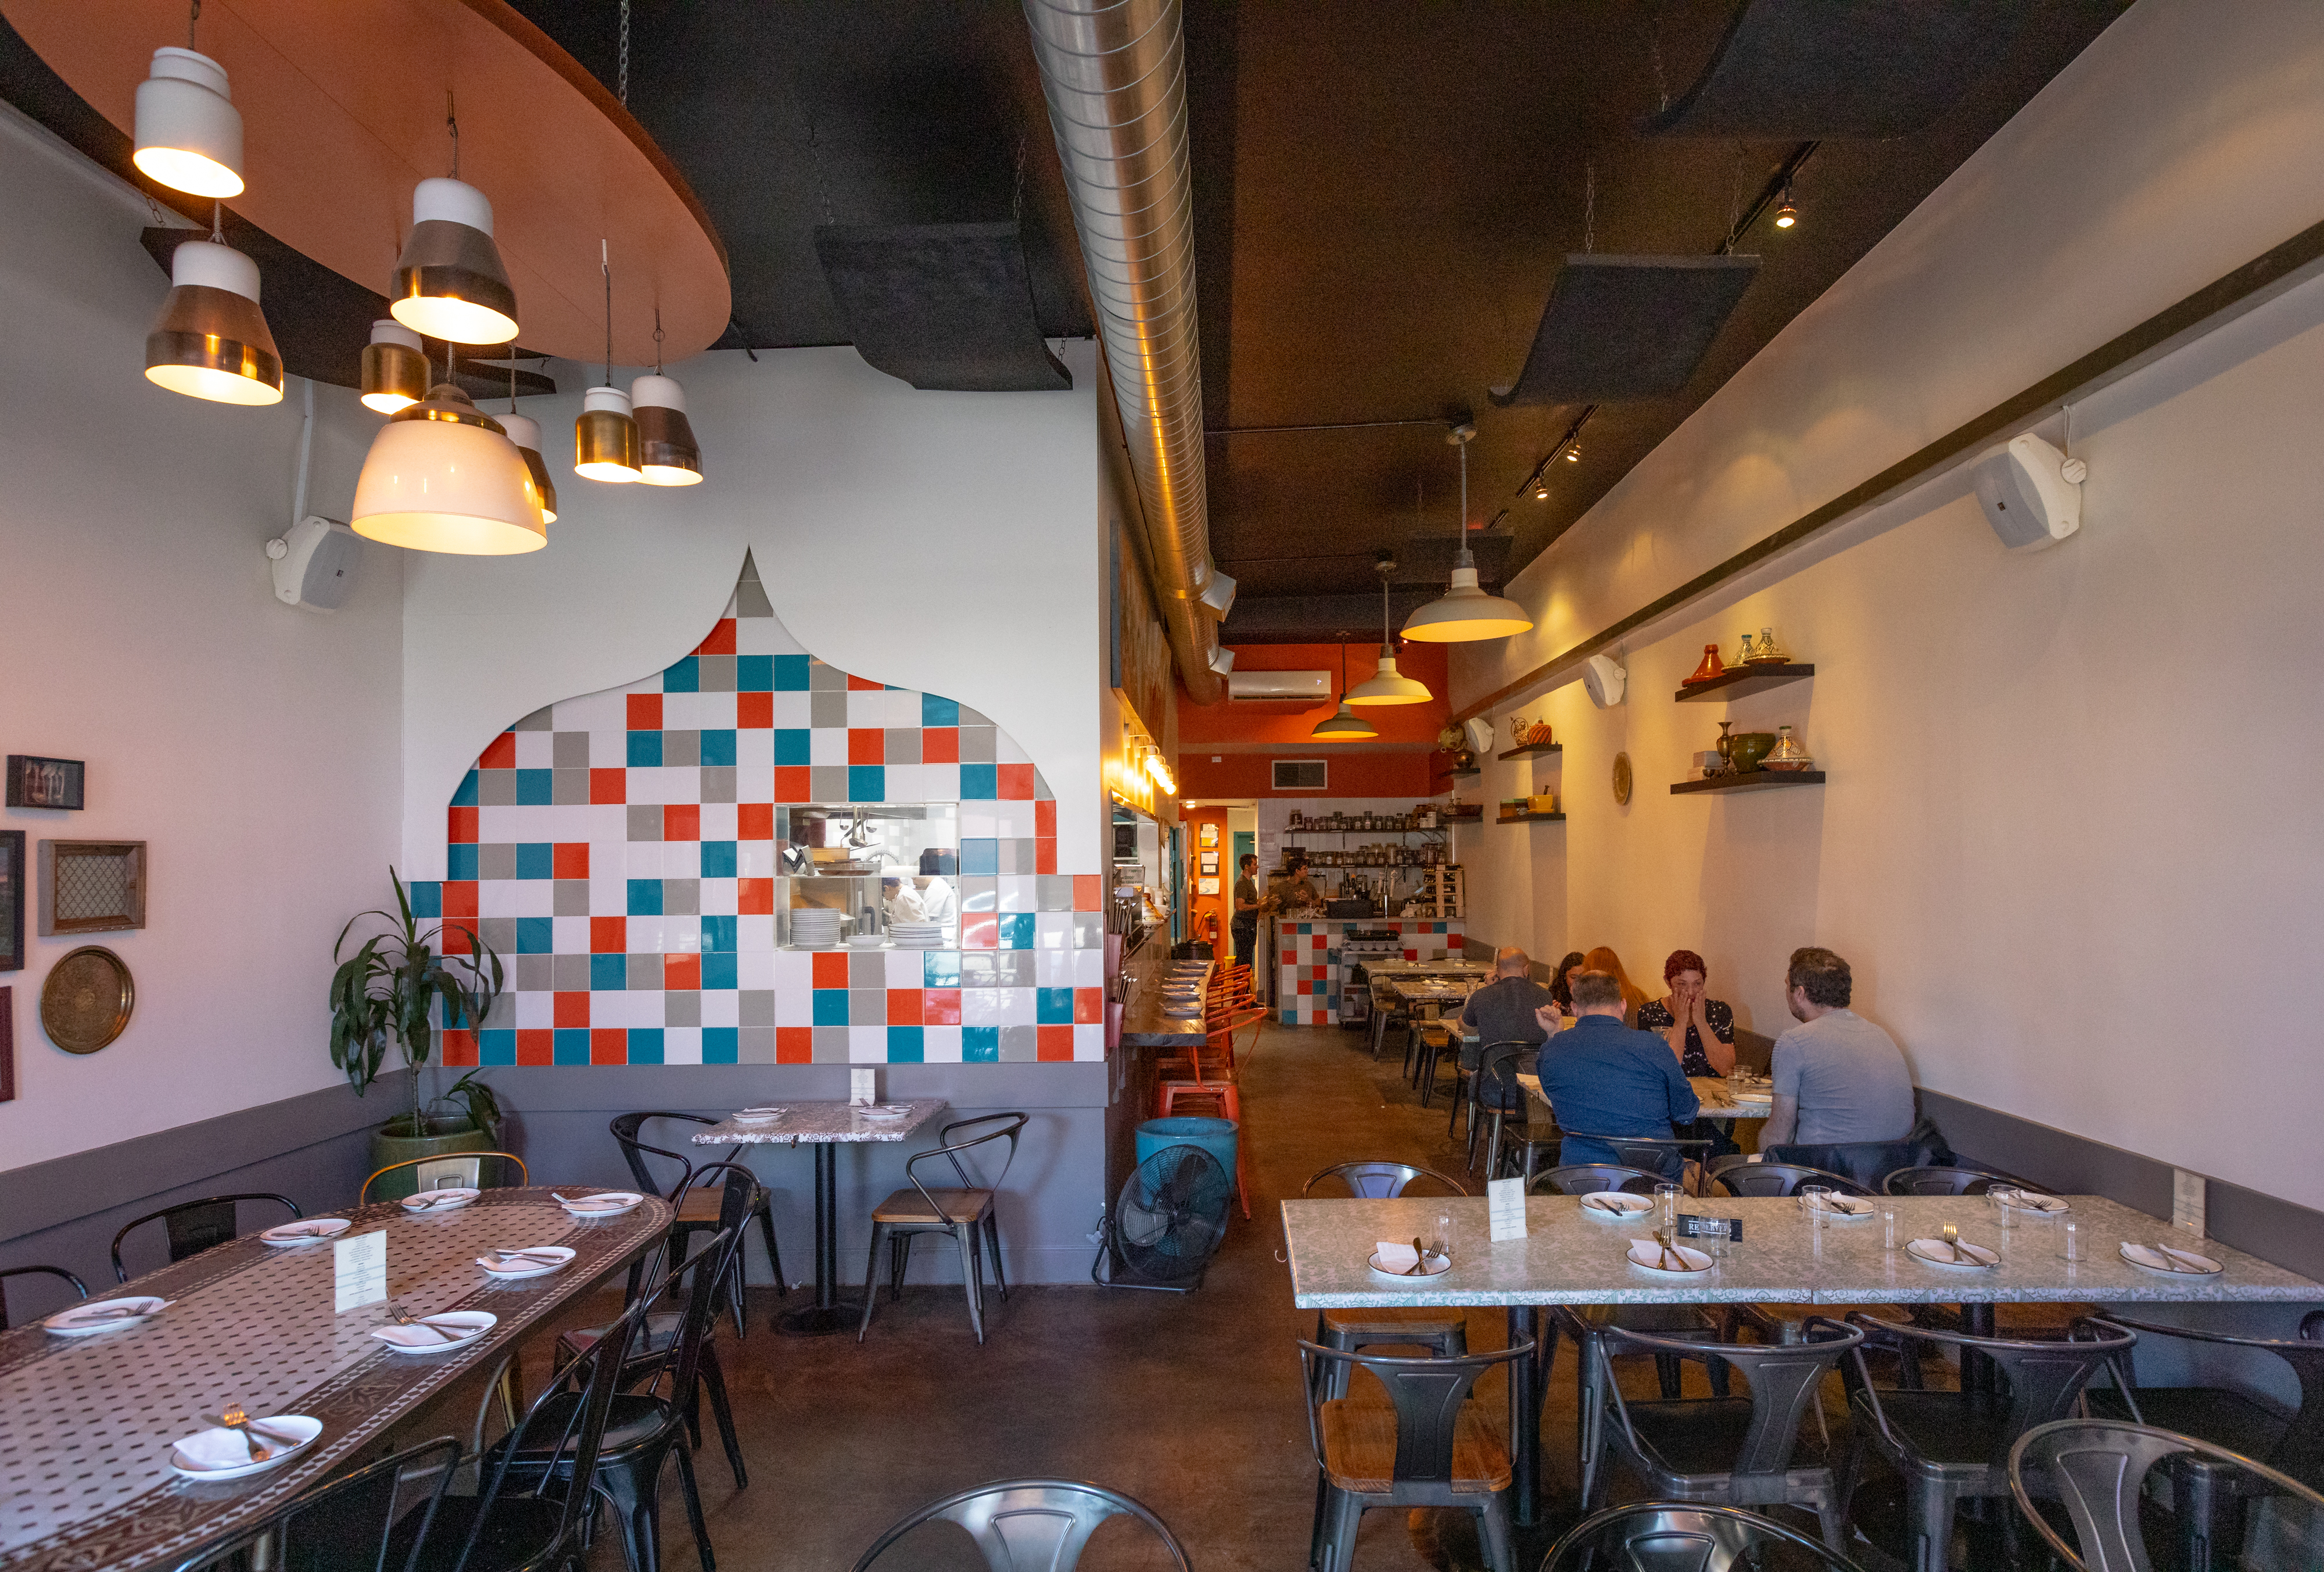 A Guide To La S Super Cute Reasonably Priced Restaurants To